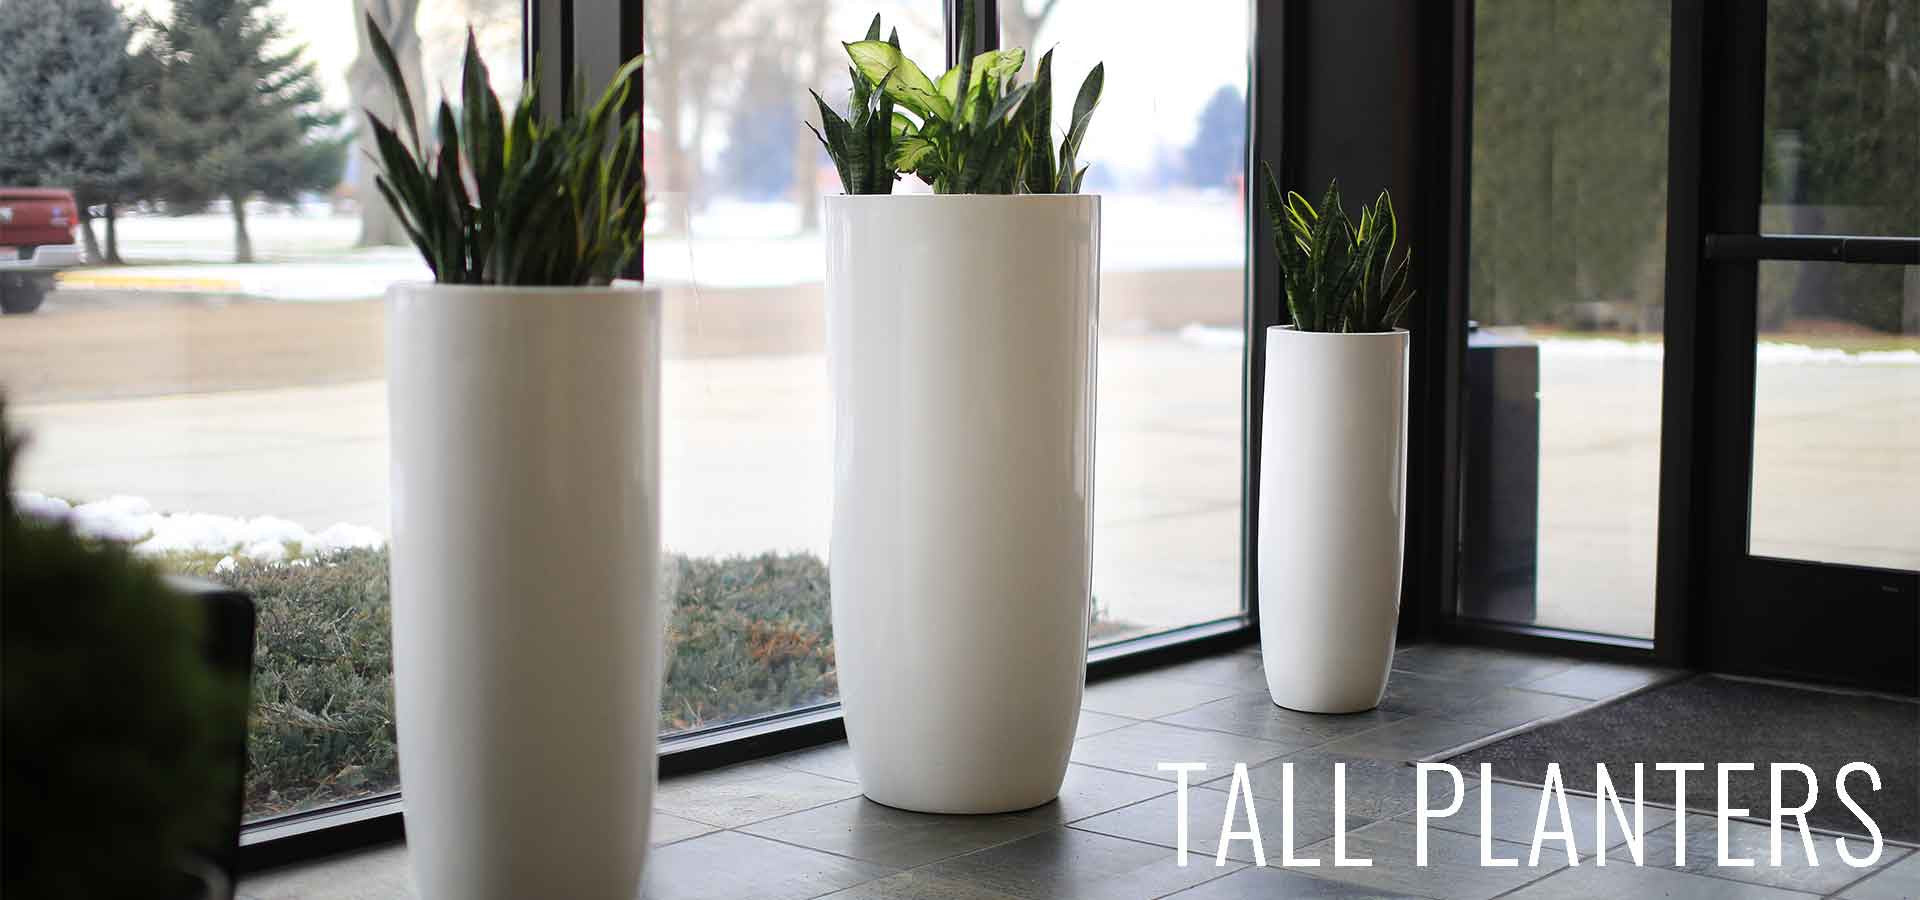 Modern planter pots boxes stylish plant containers Tall narrow indoor plants